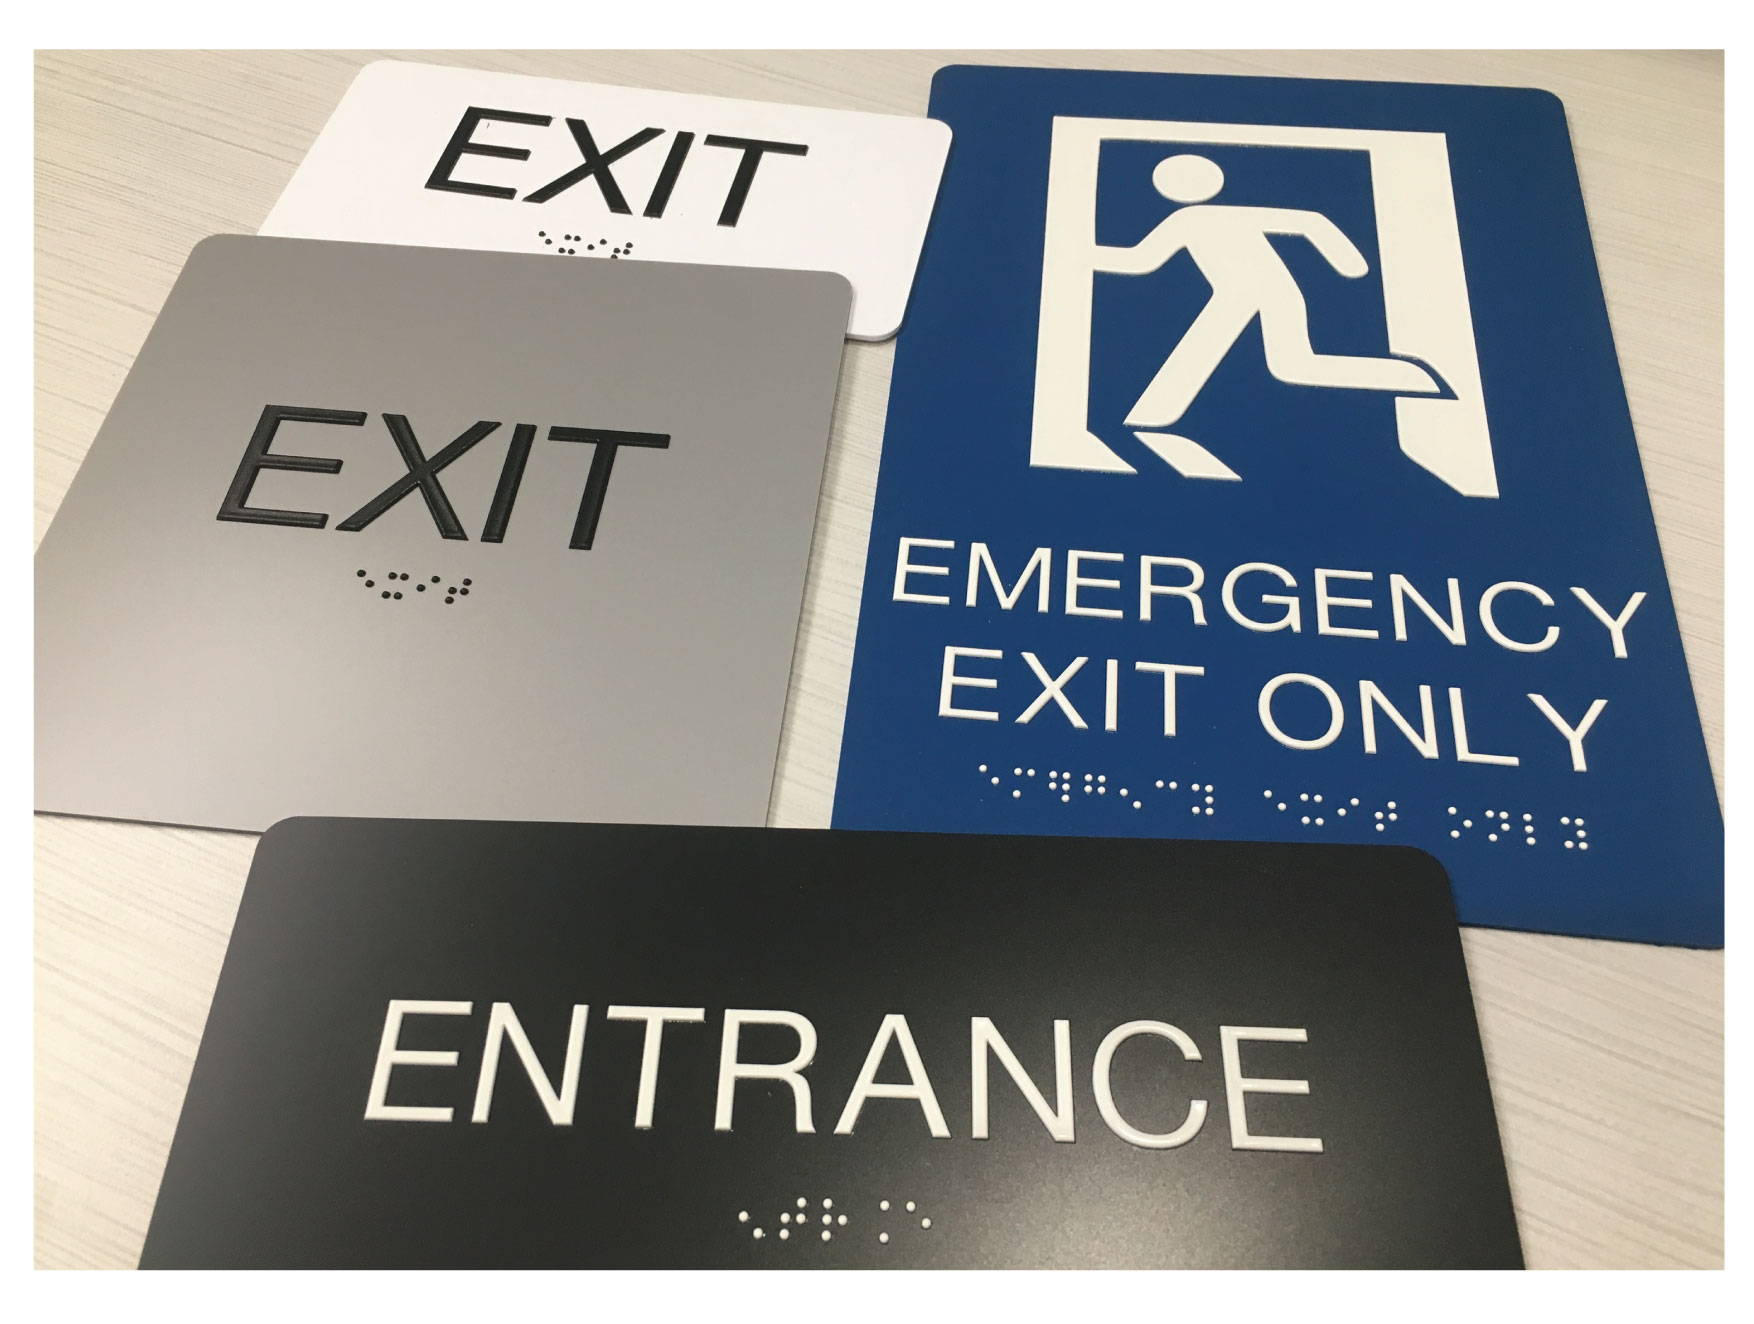 ADA Exit and Entrance Signs with Grade II Braille, Compliant ADA Signs